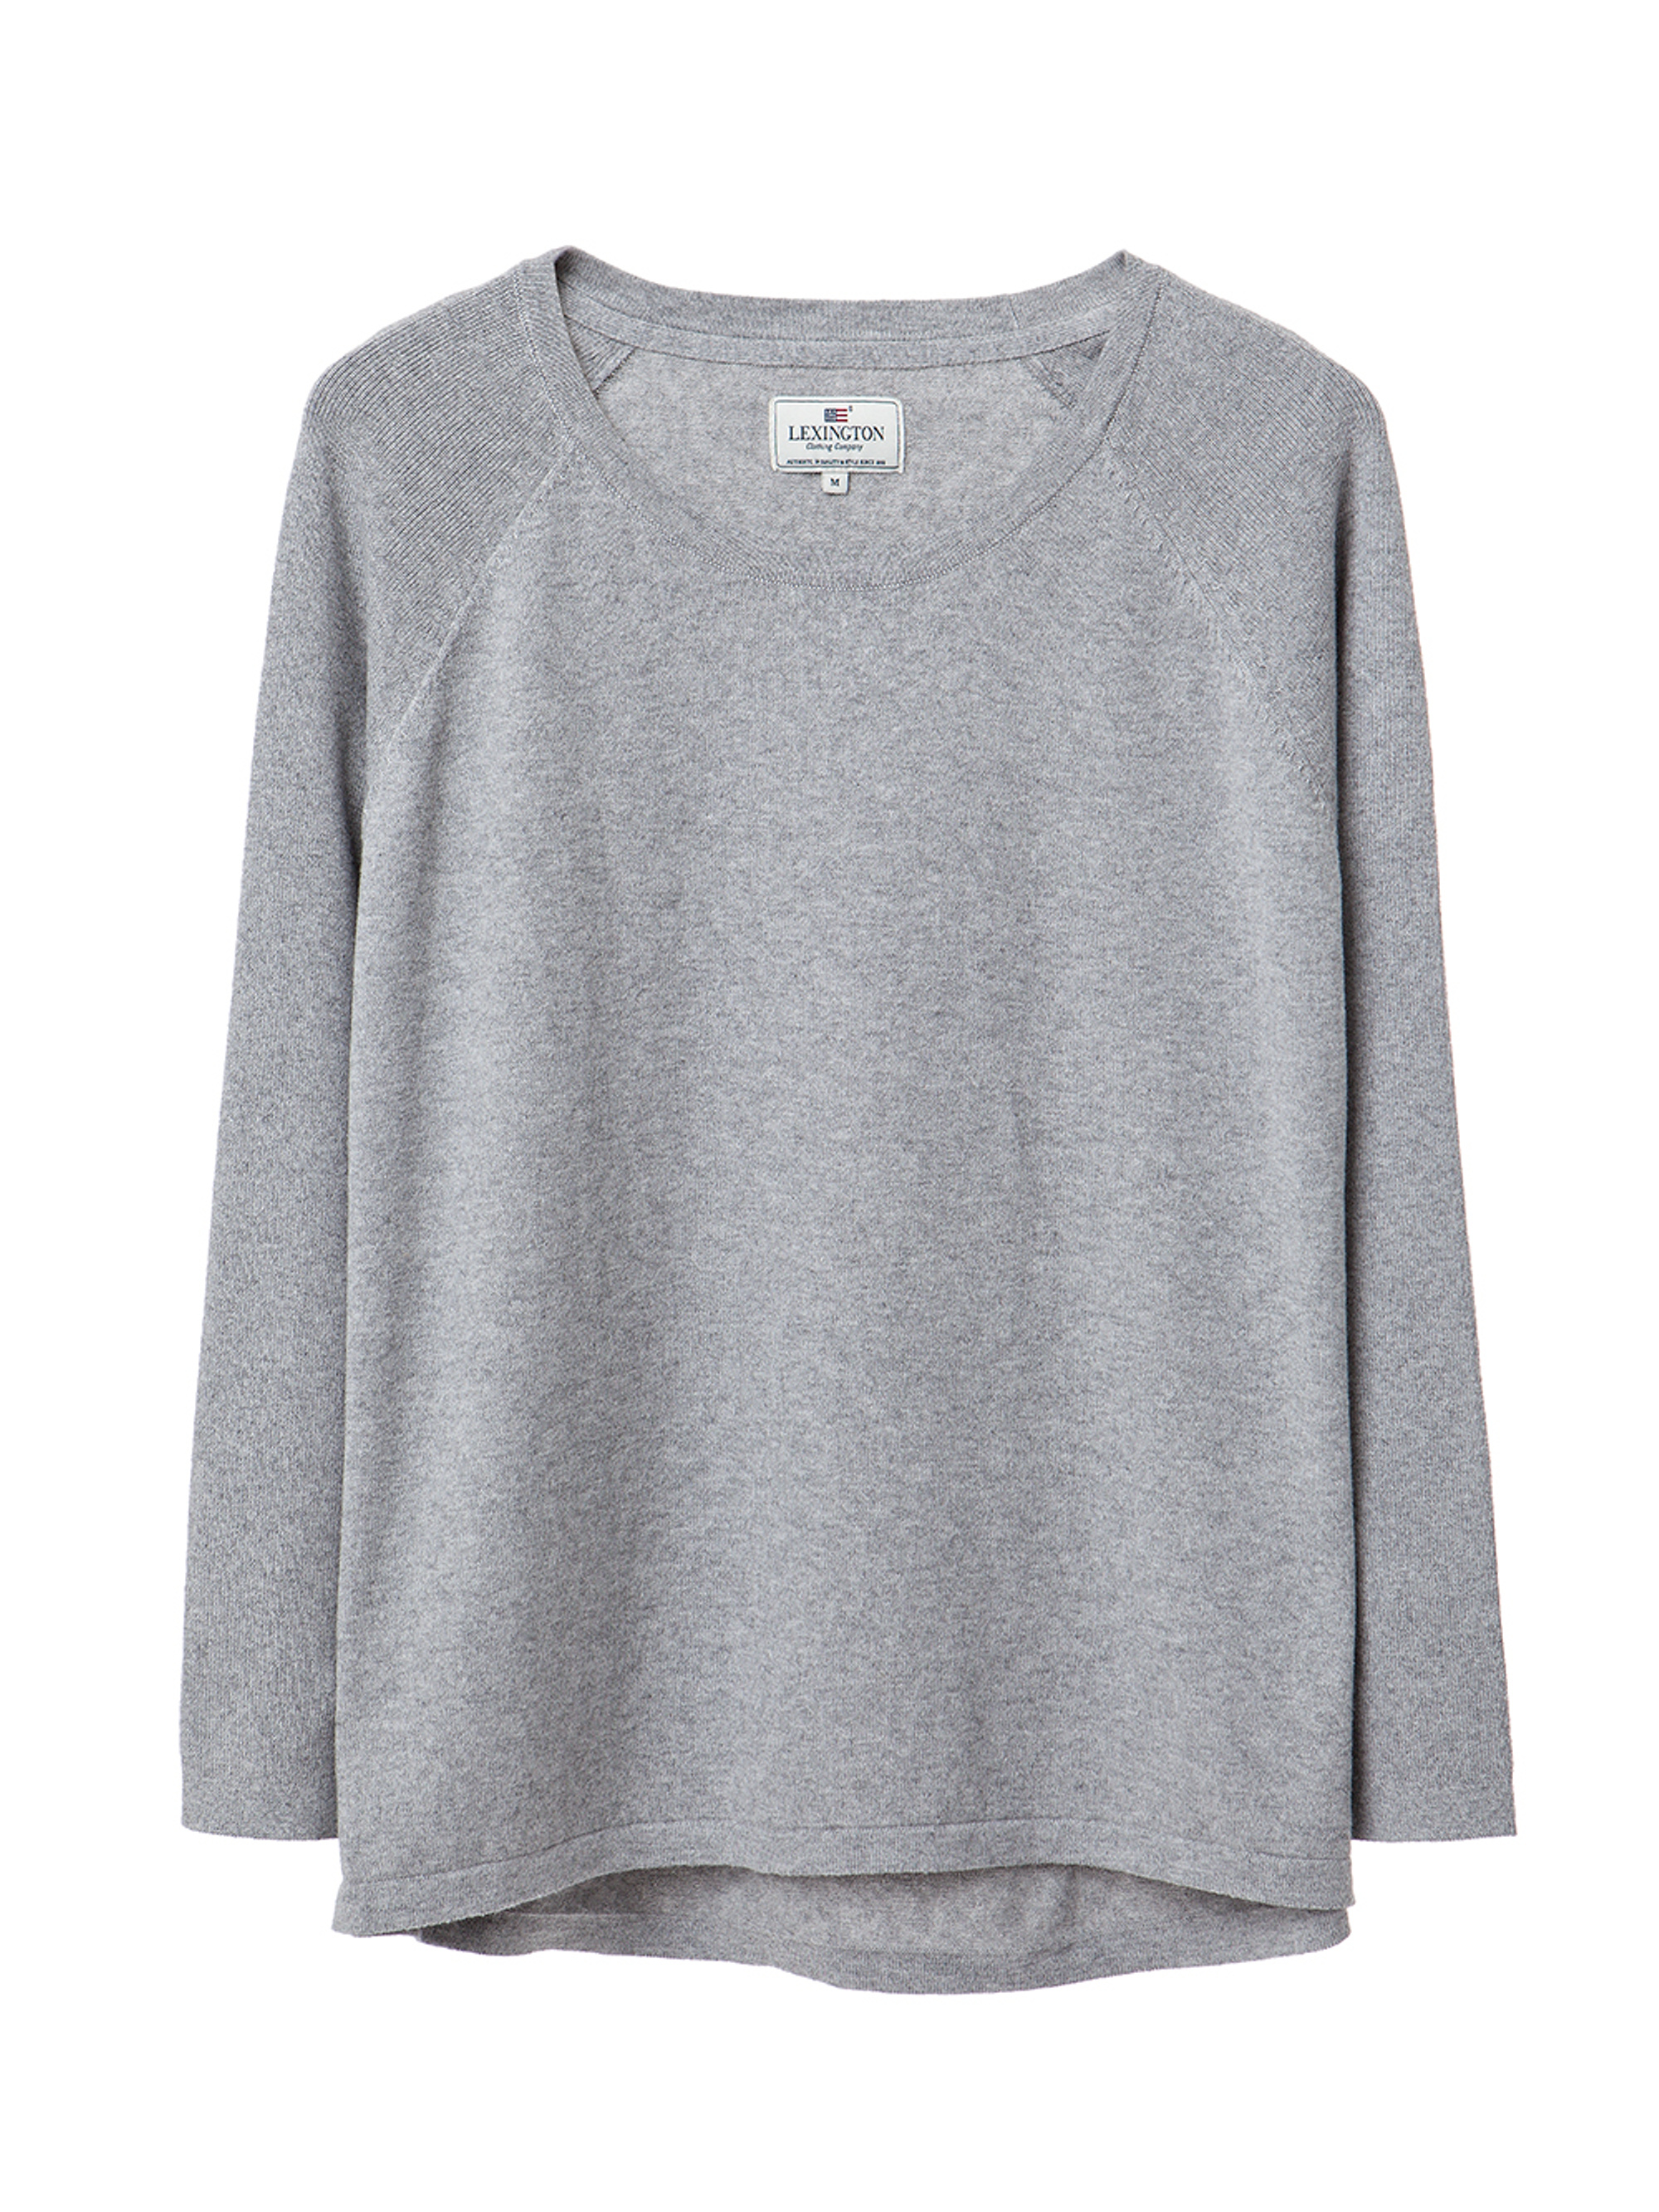 Lea Sweater, Light Warm Gray